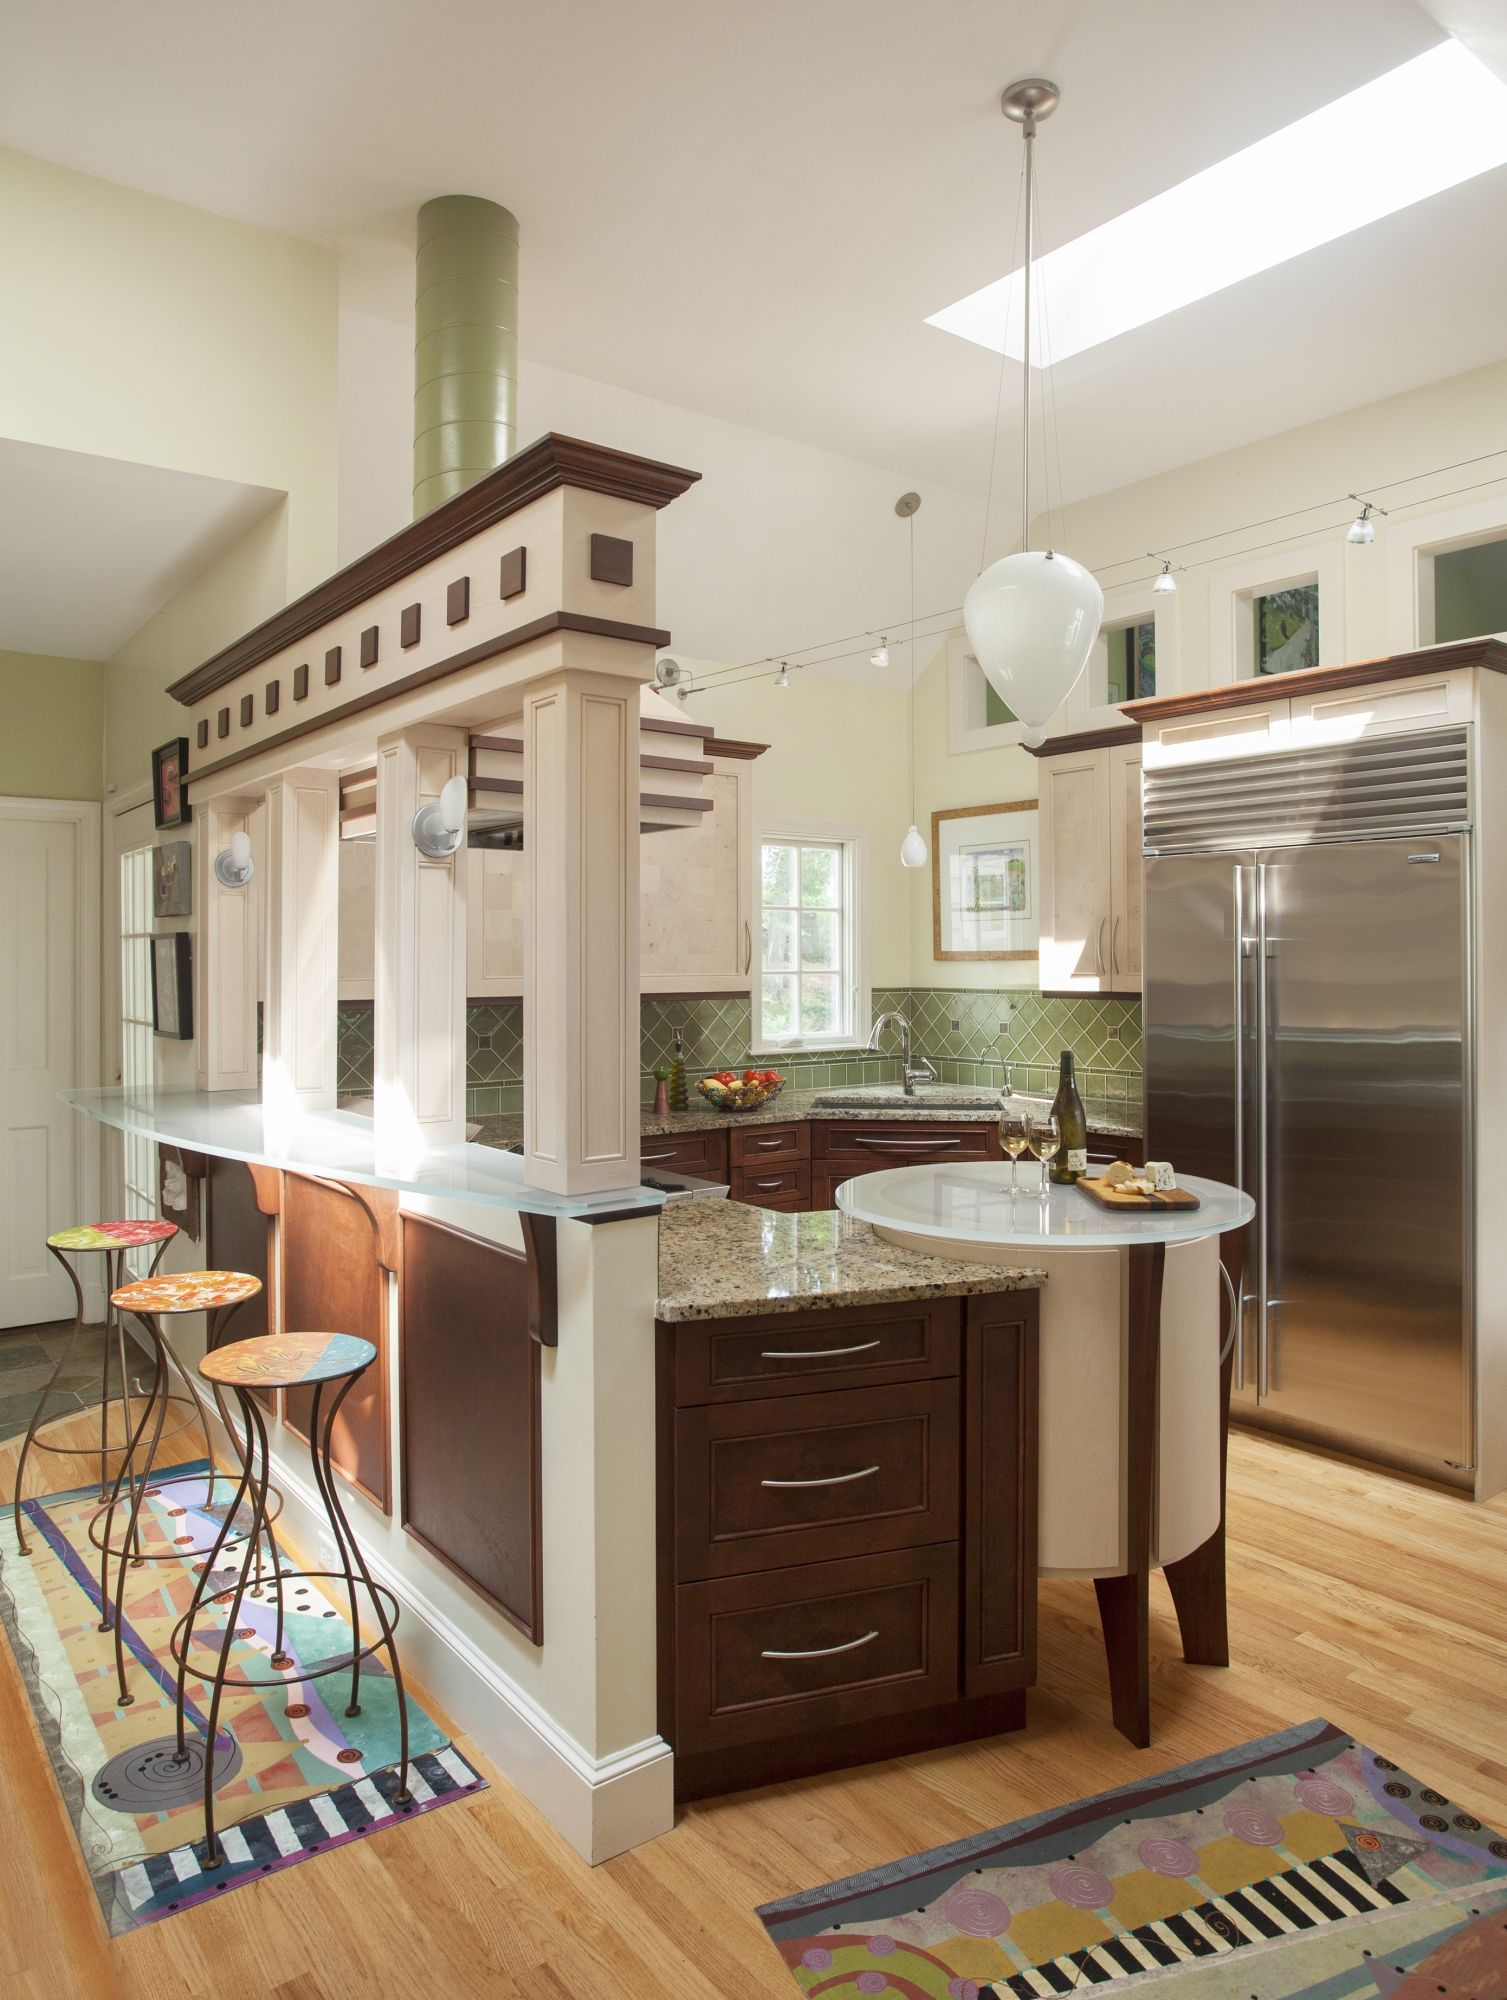 Wonderbaar Art Deco Kitchen with cool green tile and open into the dining MO-34